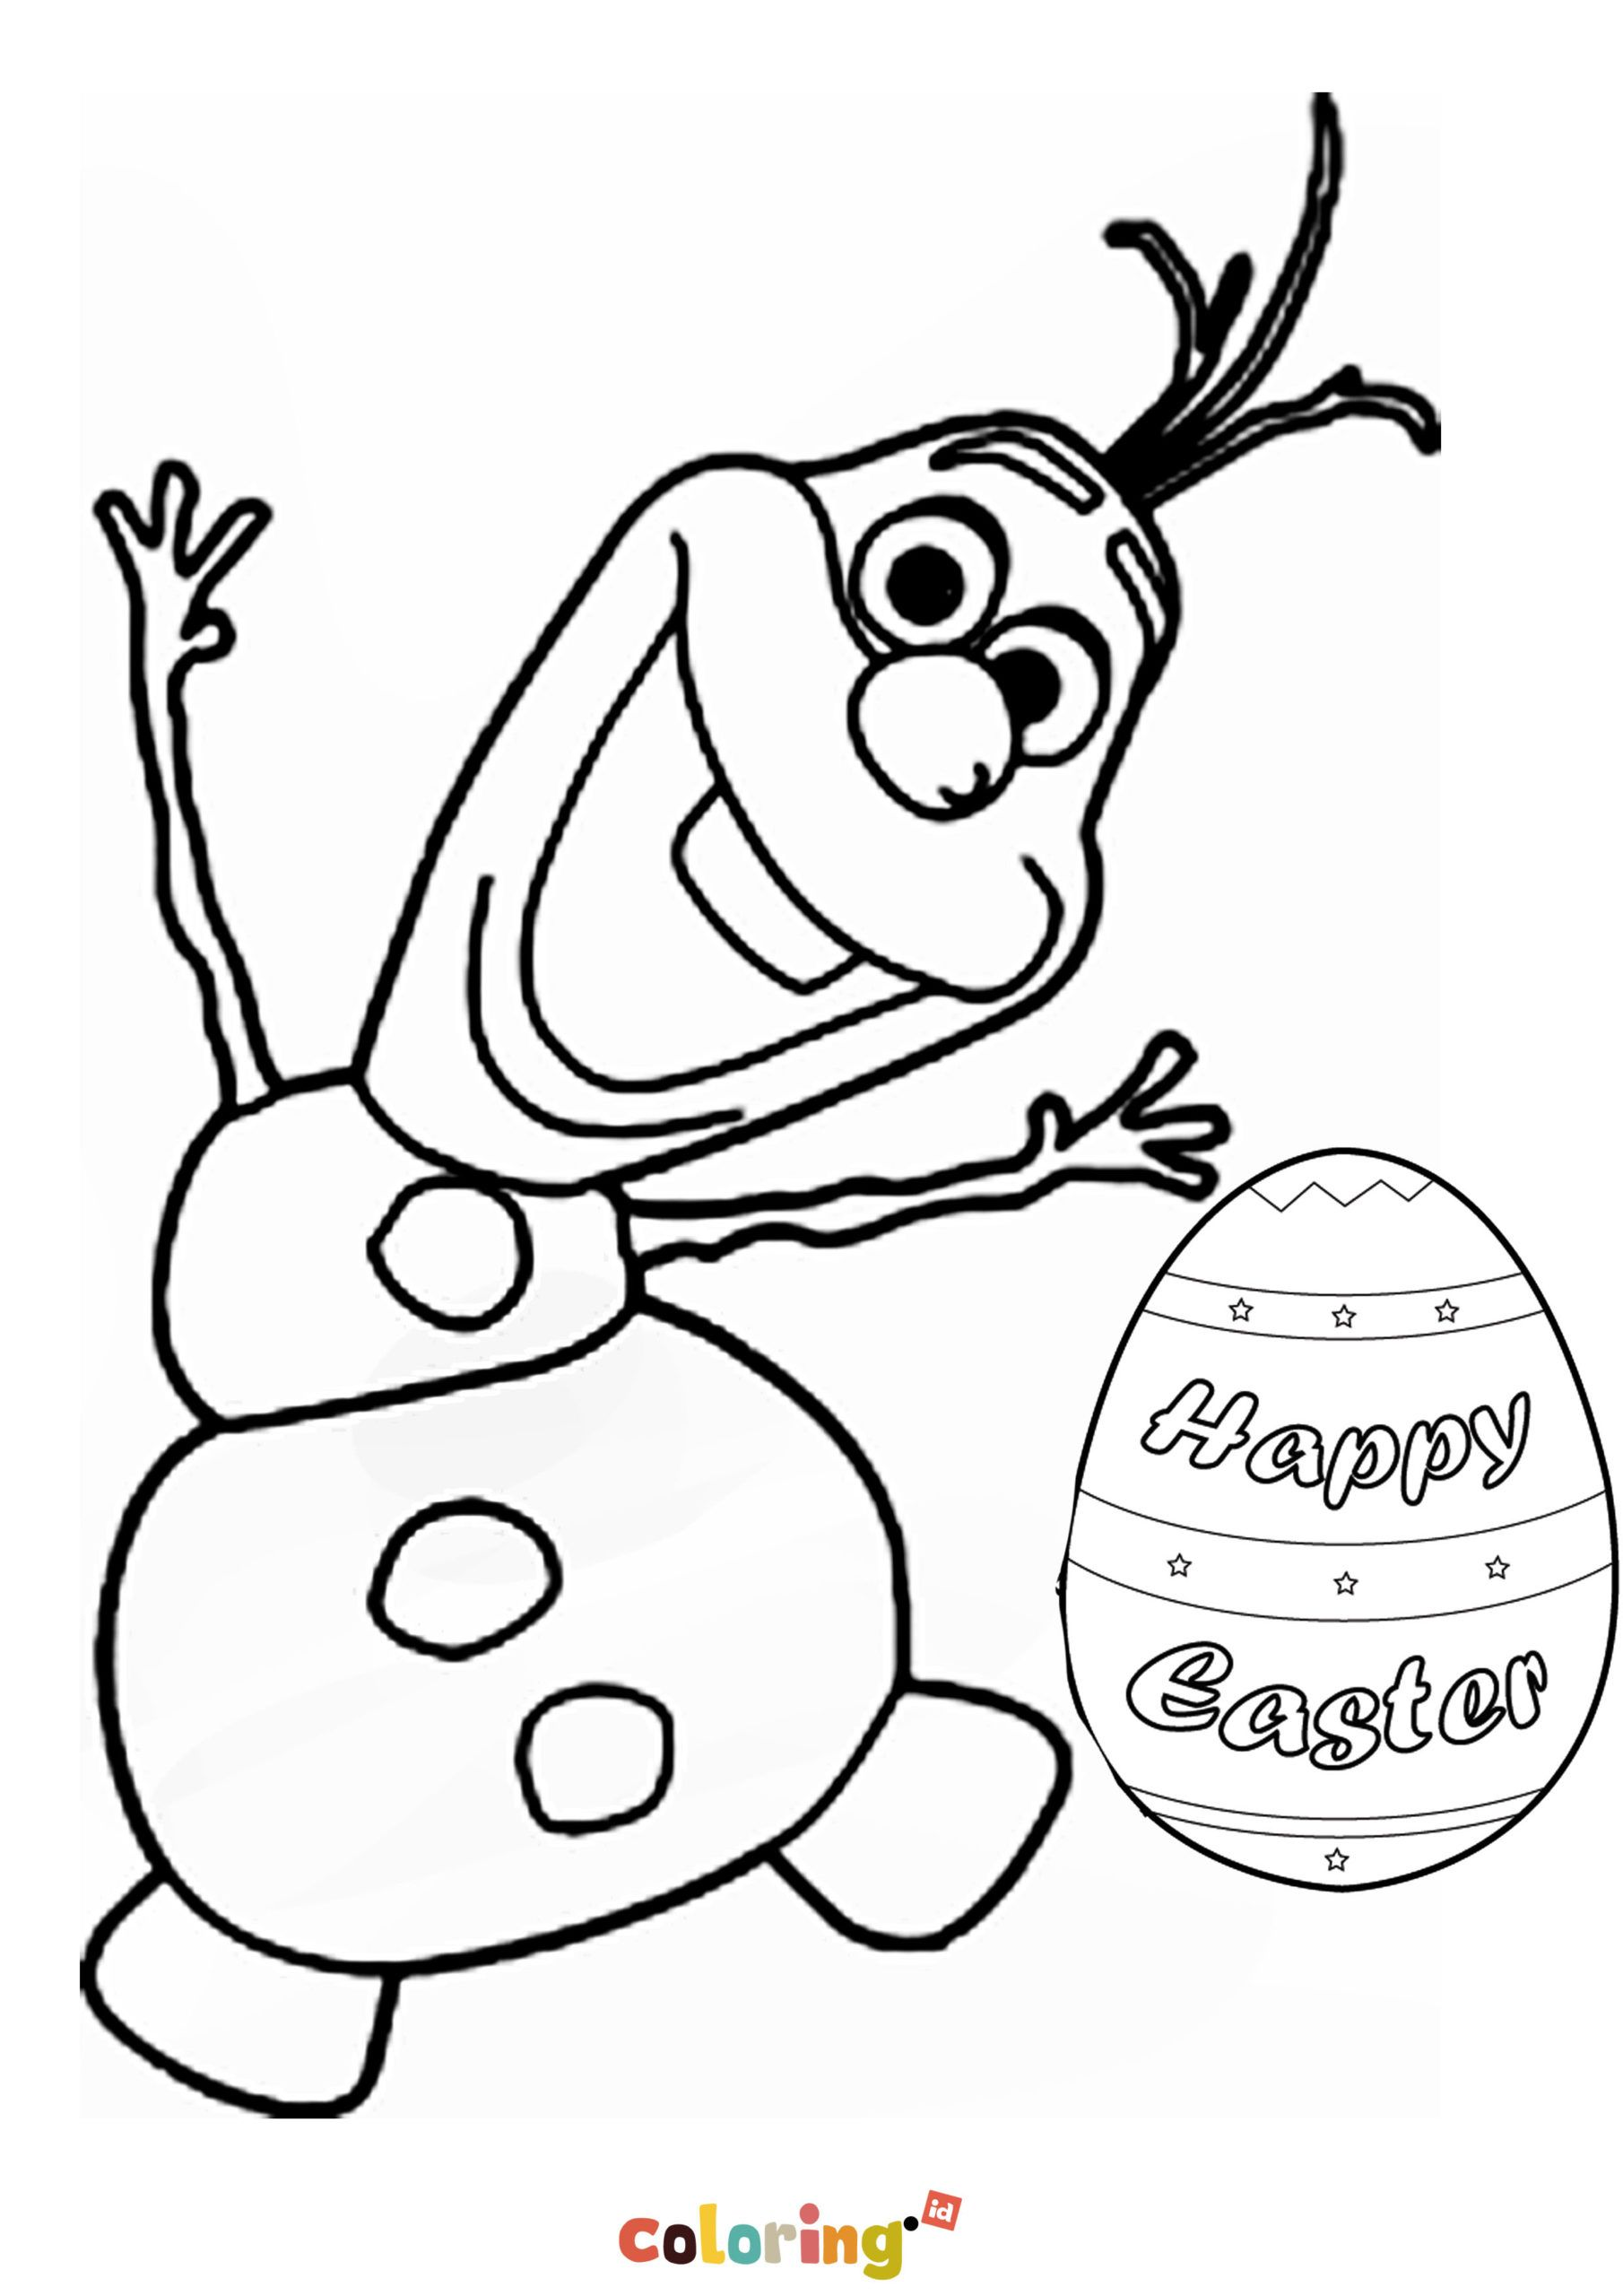 Olaf Happy Easter Egg Coloring Page Thousands Of Coloring Pages And Printable Pages Of Cartoon Cartoon Coloring Pages Easter Egg Coloring Pages Coloring Pages